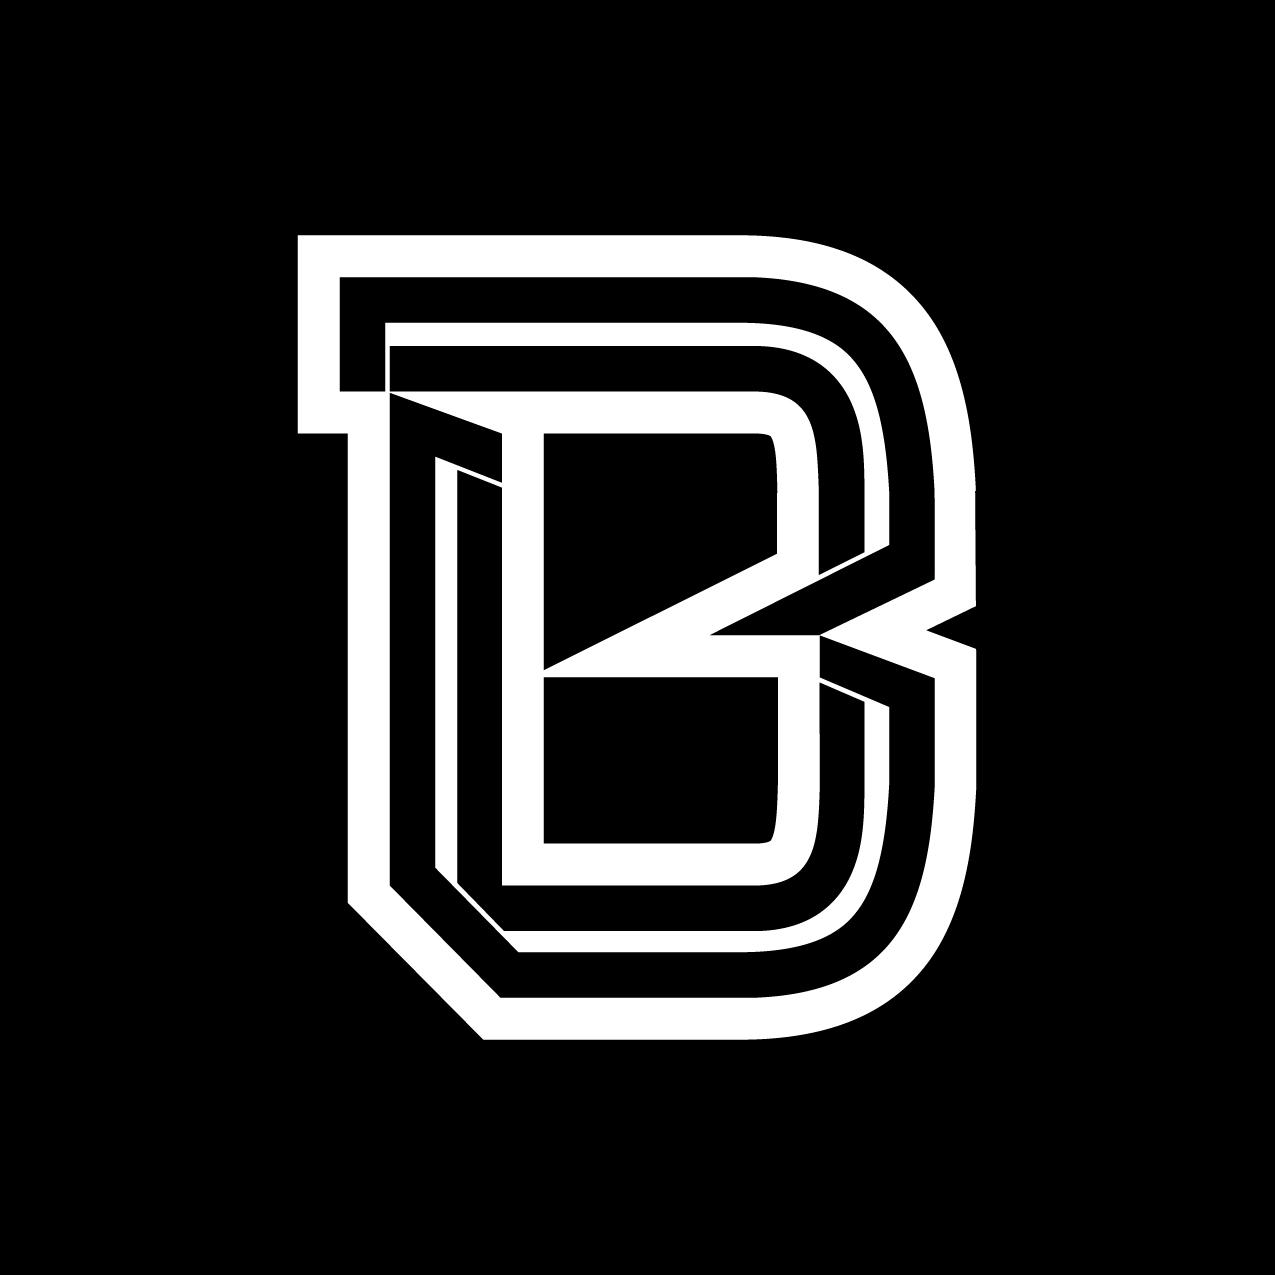 Letter B4 design by Furia